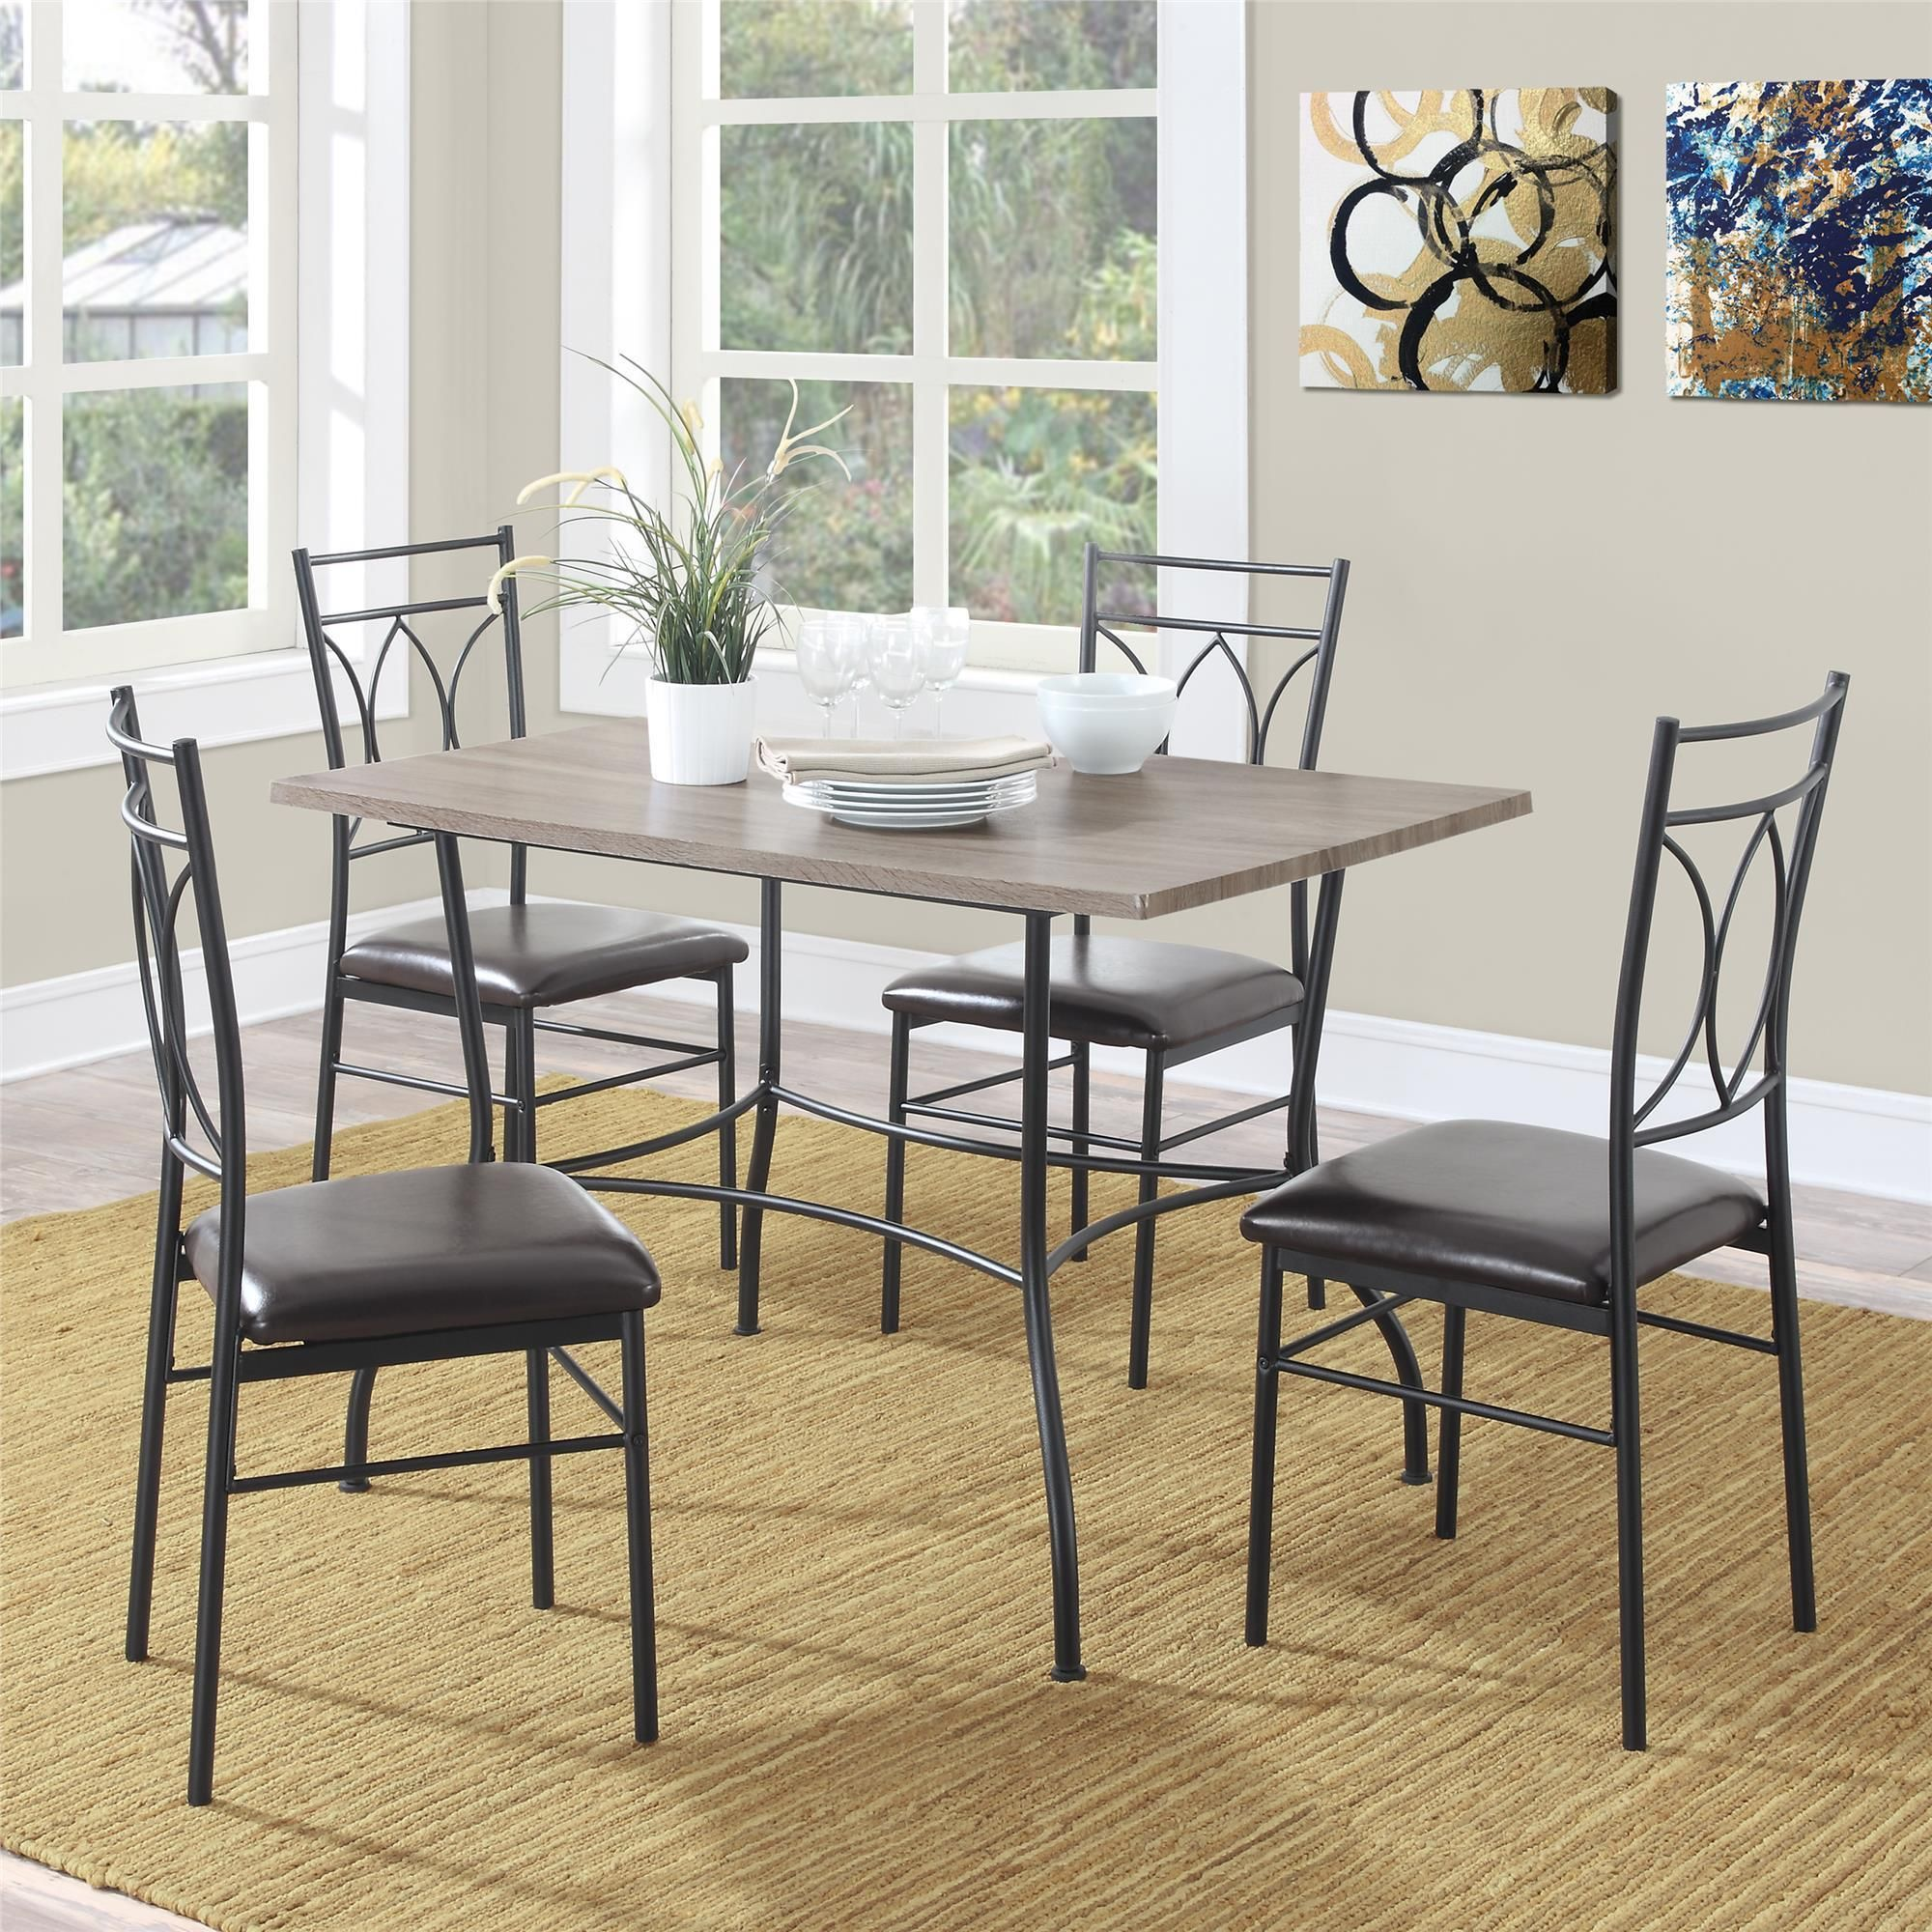 Dorel Living Shelby 5-piece Rustic Wood And Metal Dining